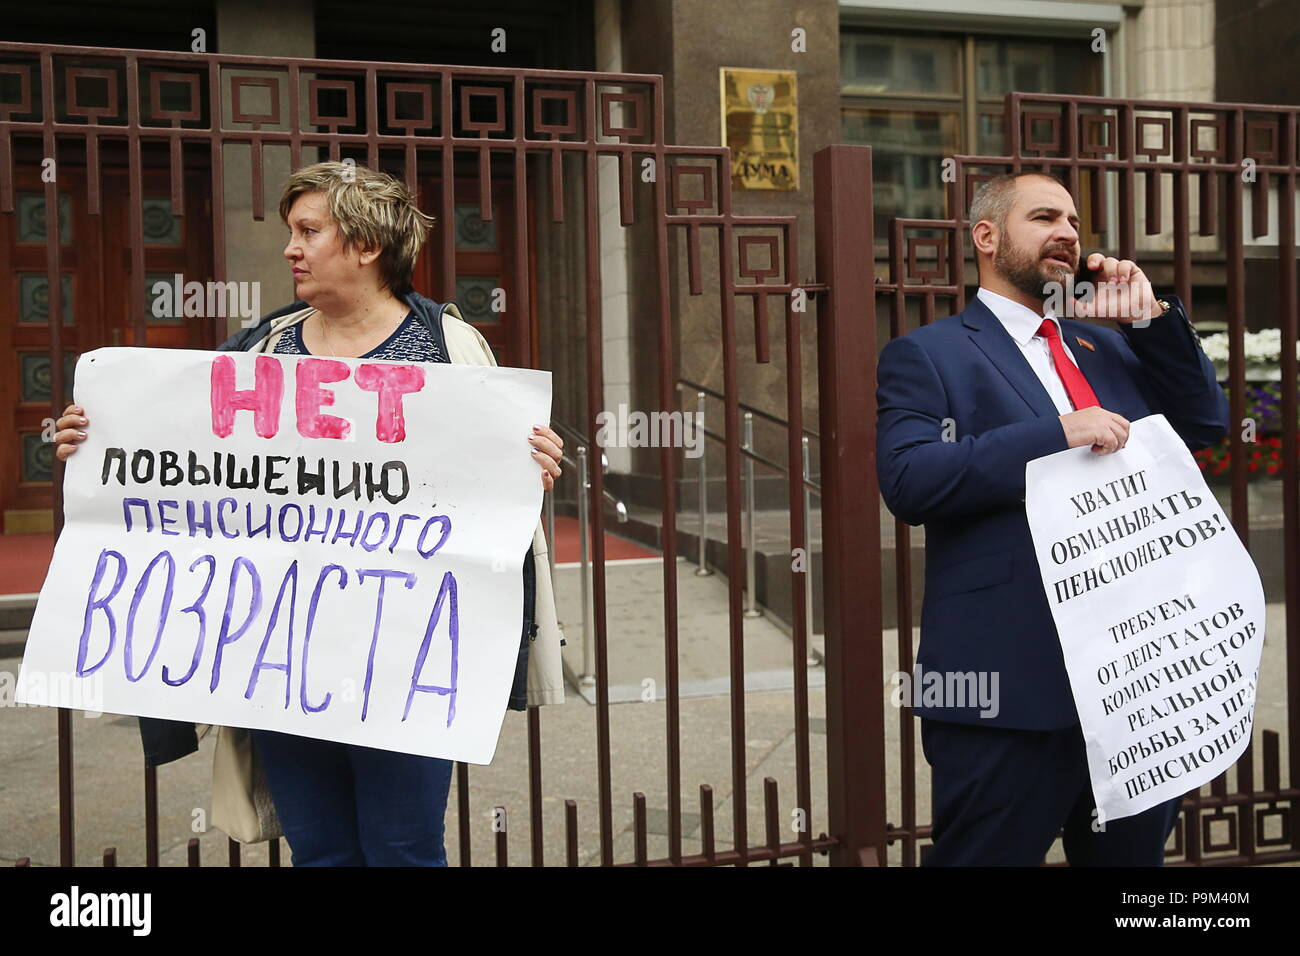 Moscow, Russia. 19th July, 2018. MOSCOW, RUSSIA - JULY 19, 2018: People hold posters outside the building of the Russian State Duma ahead of the first reading of a draft law on raising the retirement age from 60 to 65 for men, and from 55 to 63 for women over a 15-year period. Vladimir Gerdo/TASS Credit: ITAR-TASS News Agency/Alamy Live News - Stock Image